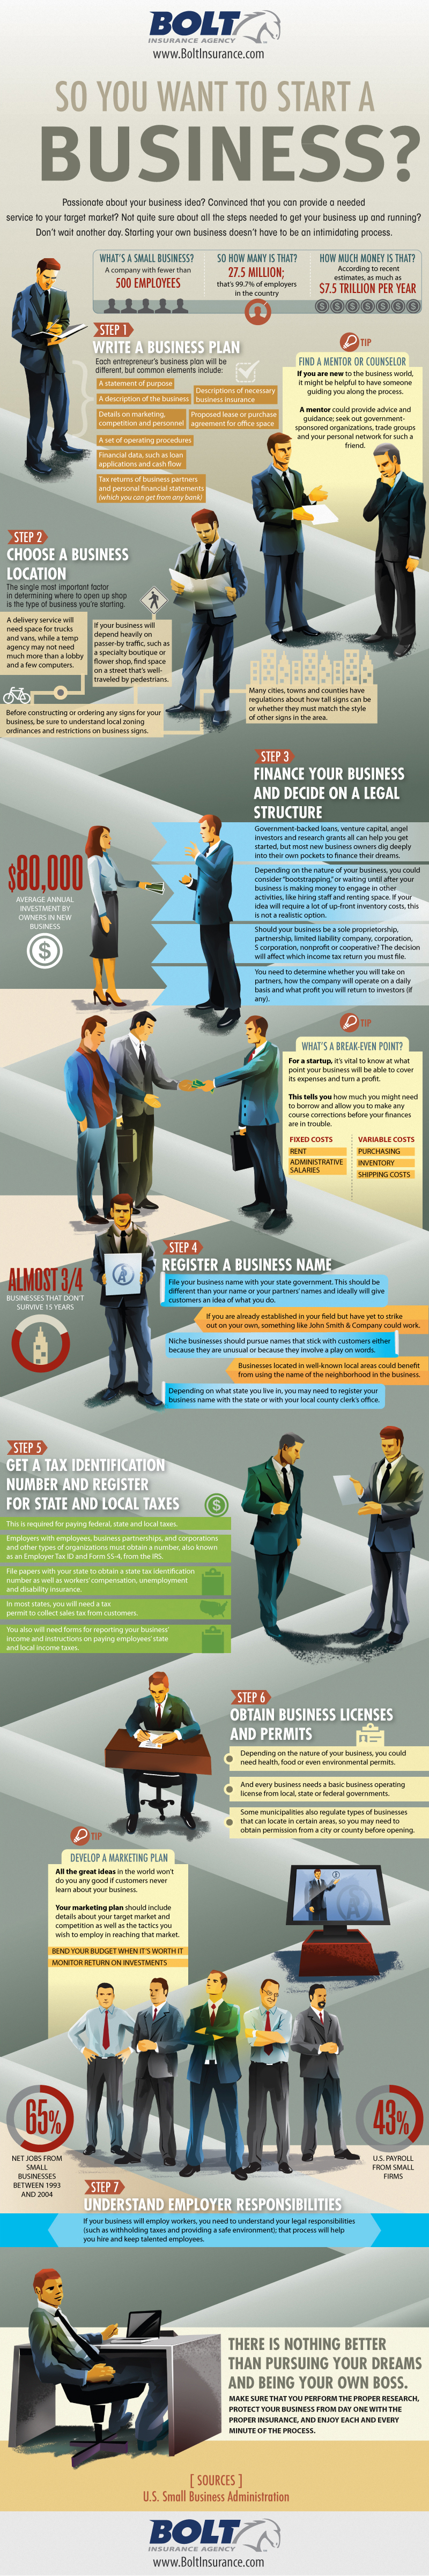 so_you_want_start_a_business_infographic